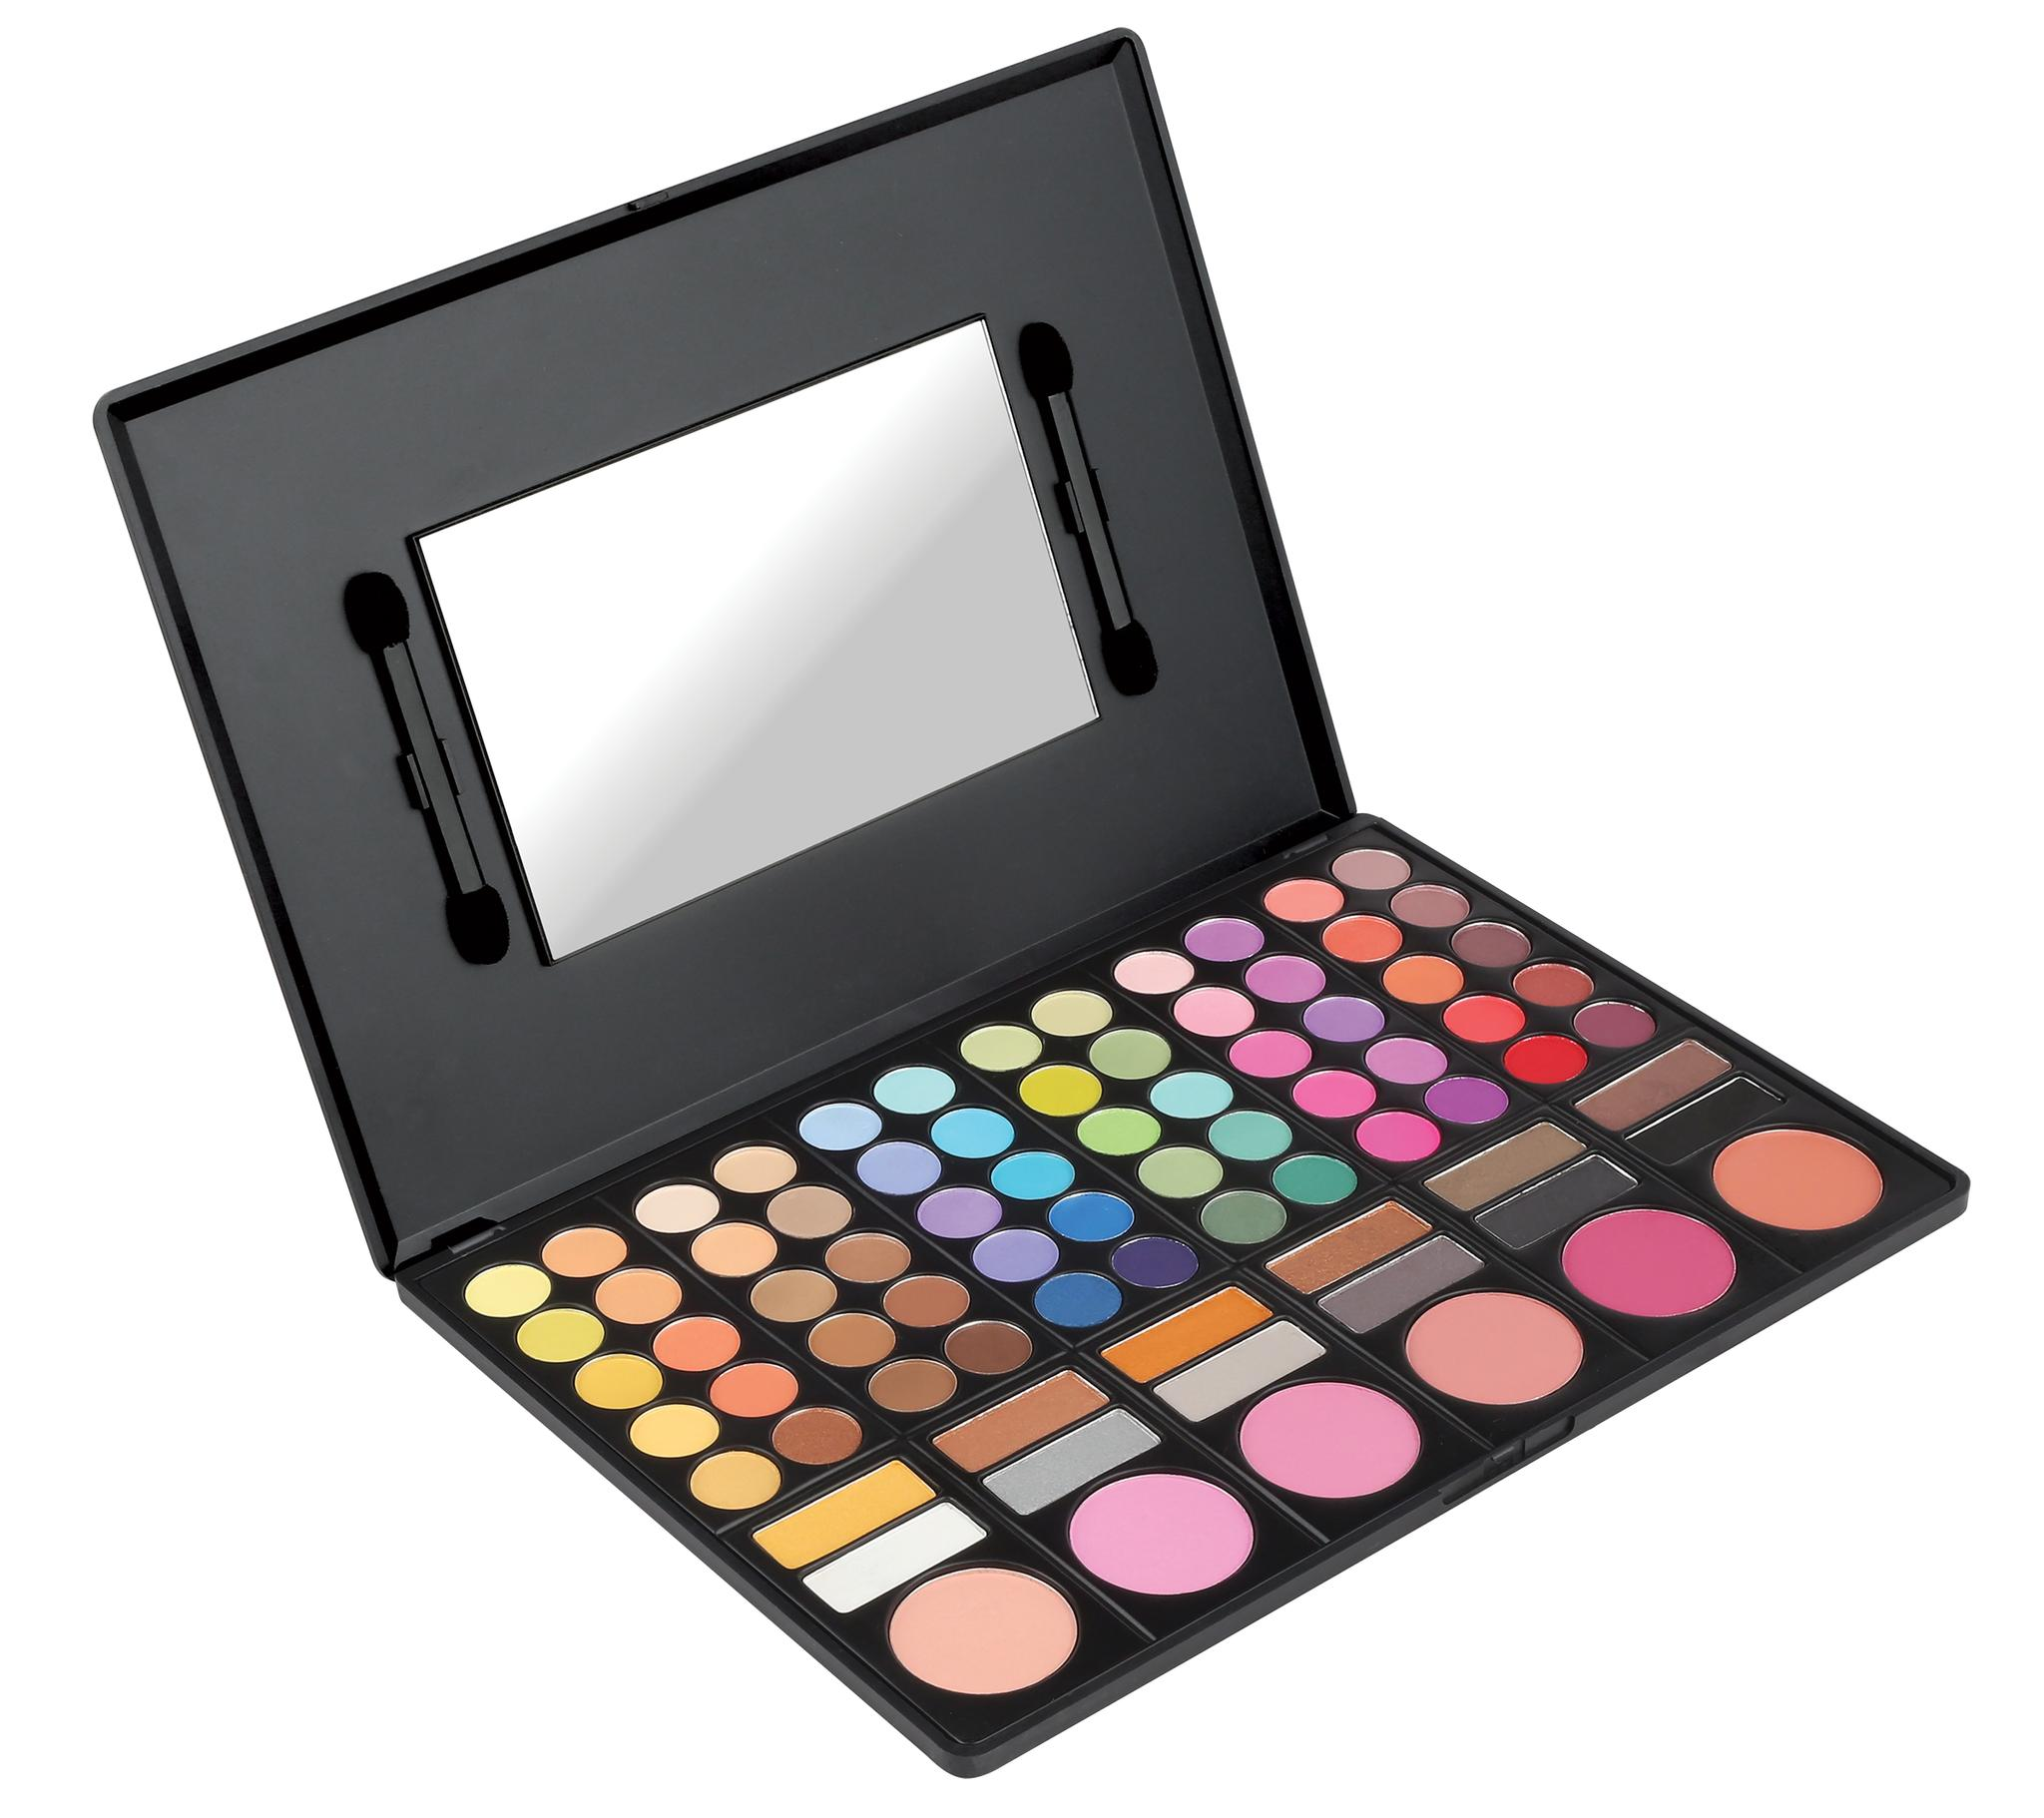 78 Shadow Blush Palette Image